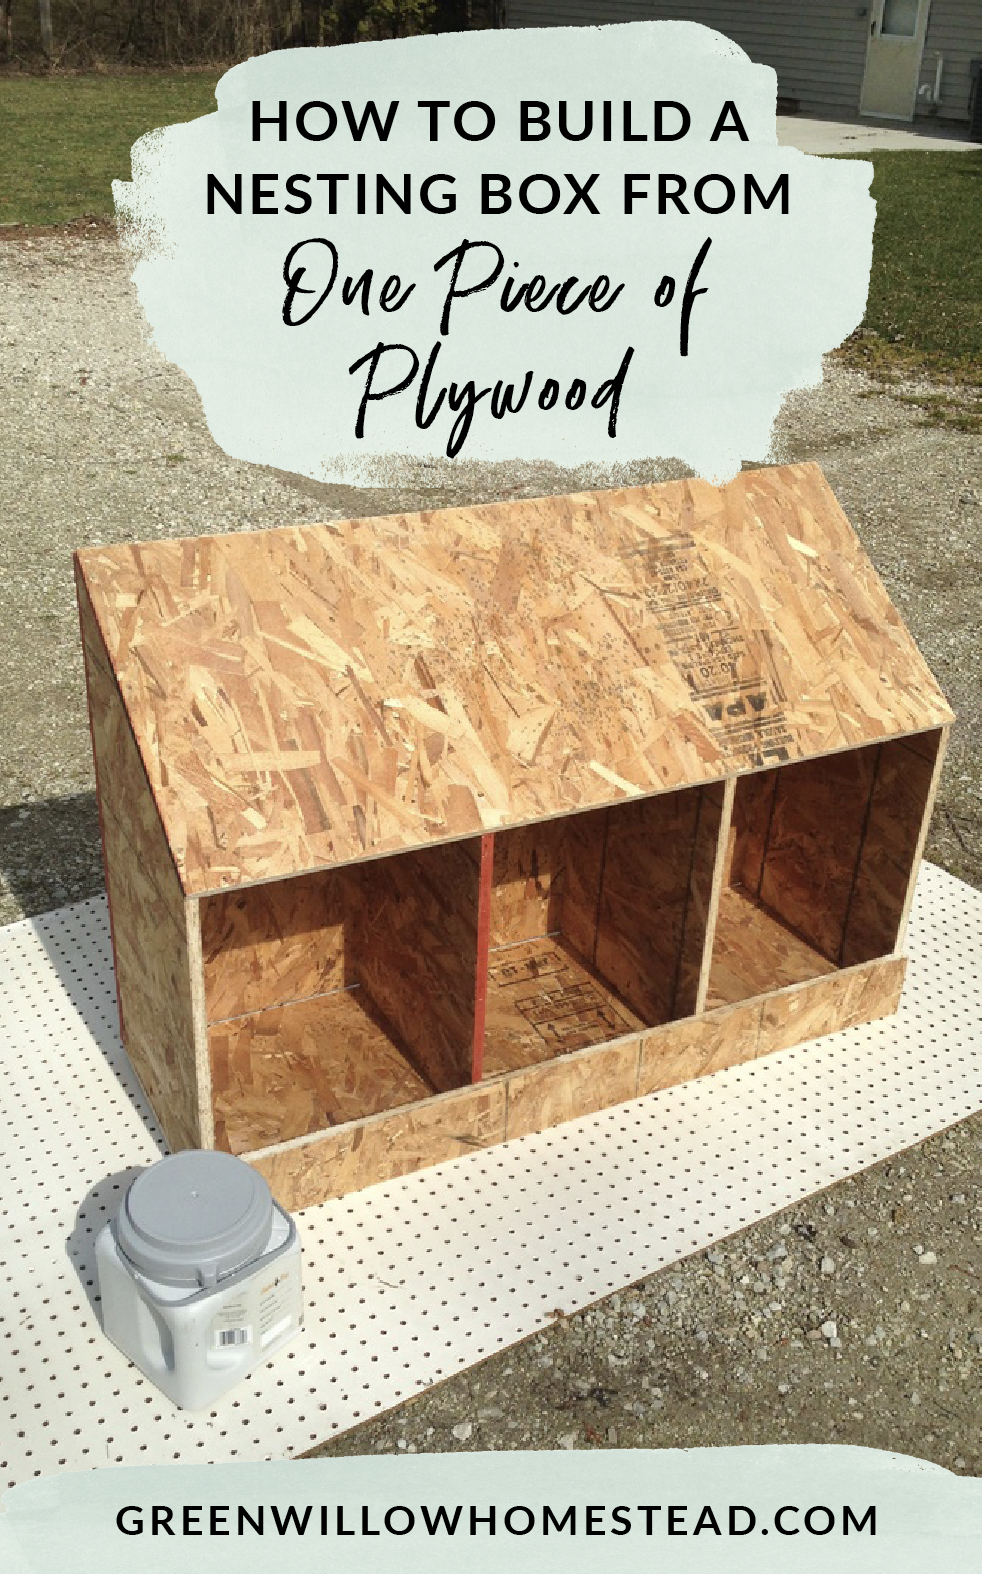 The 11 Best DIY Chicken Coop Ideas is part of Chicken coop, Chicken diy, Diy chicken coop, Building a chicken coop, Best chicken coop, Portable chicken coop - From farmhouse coops to feeders to nesting boxes here are the 11 Best DIY Chicken Coop Ideas that will rule to roost!